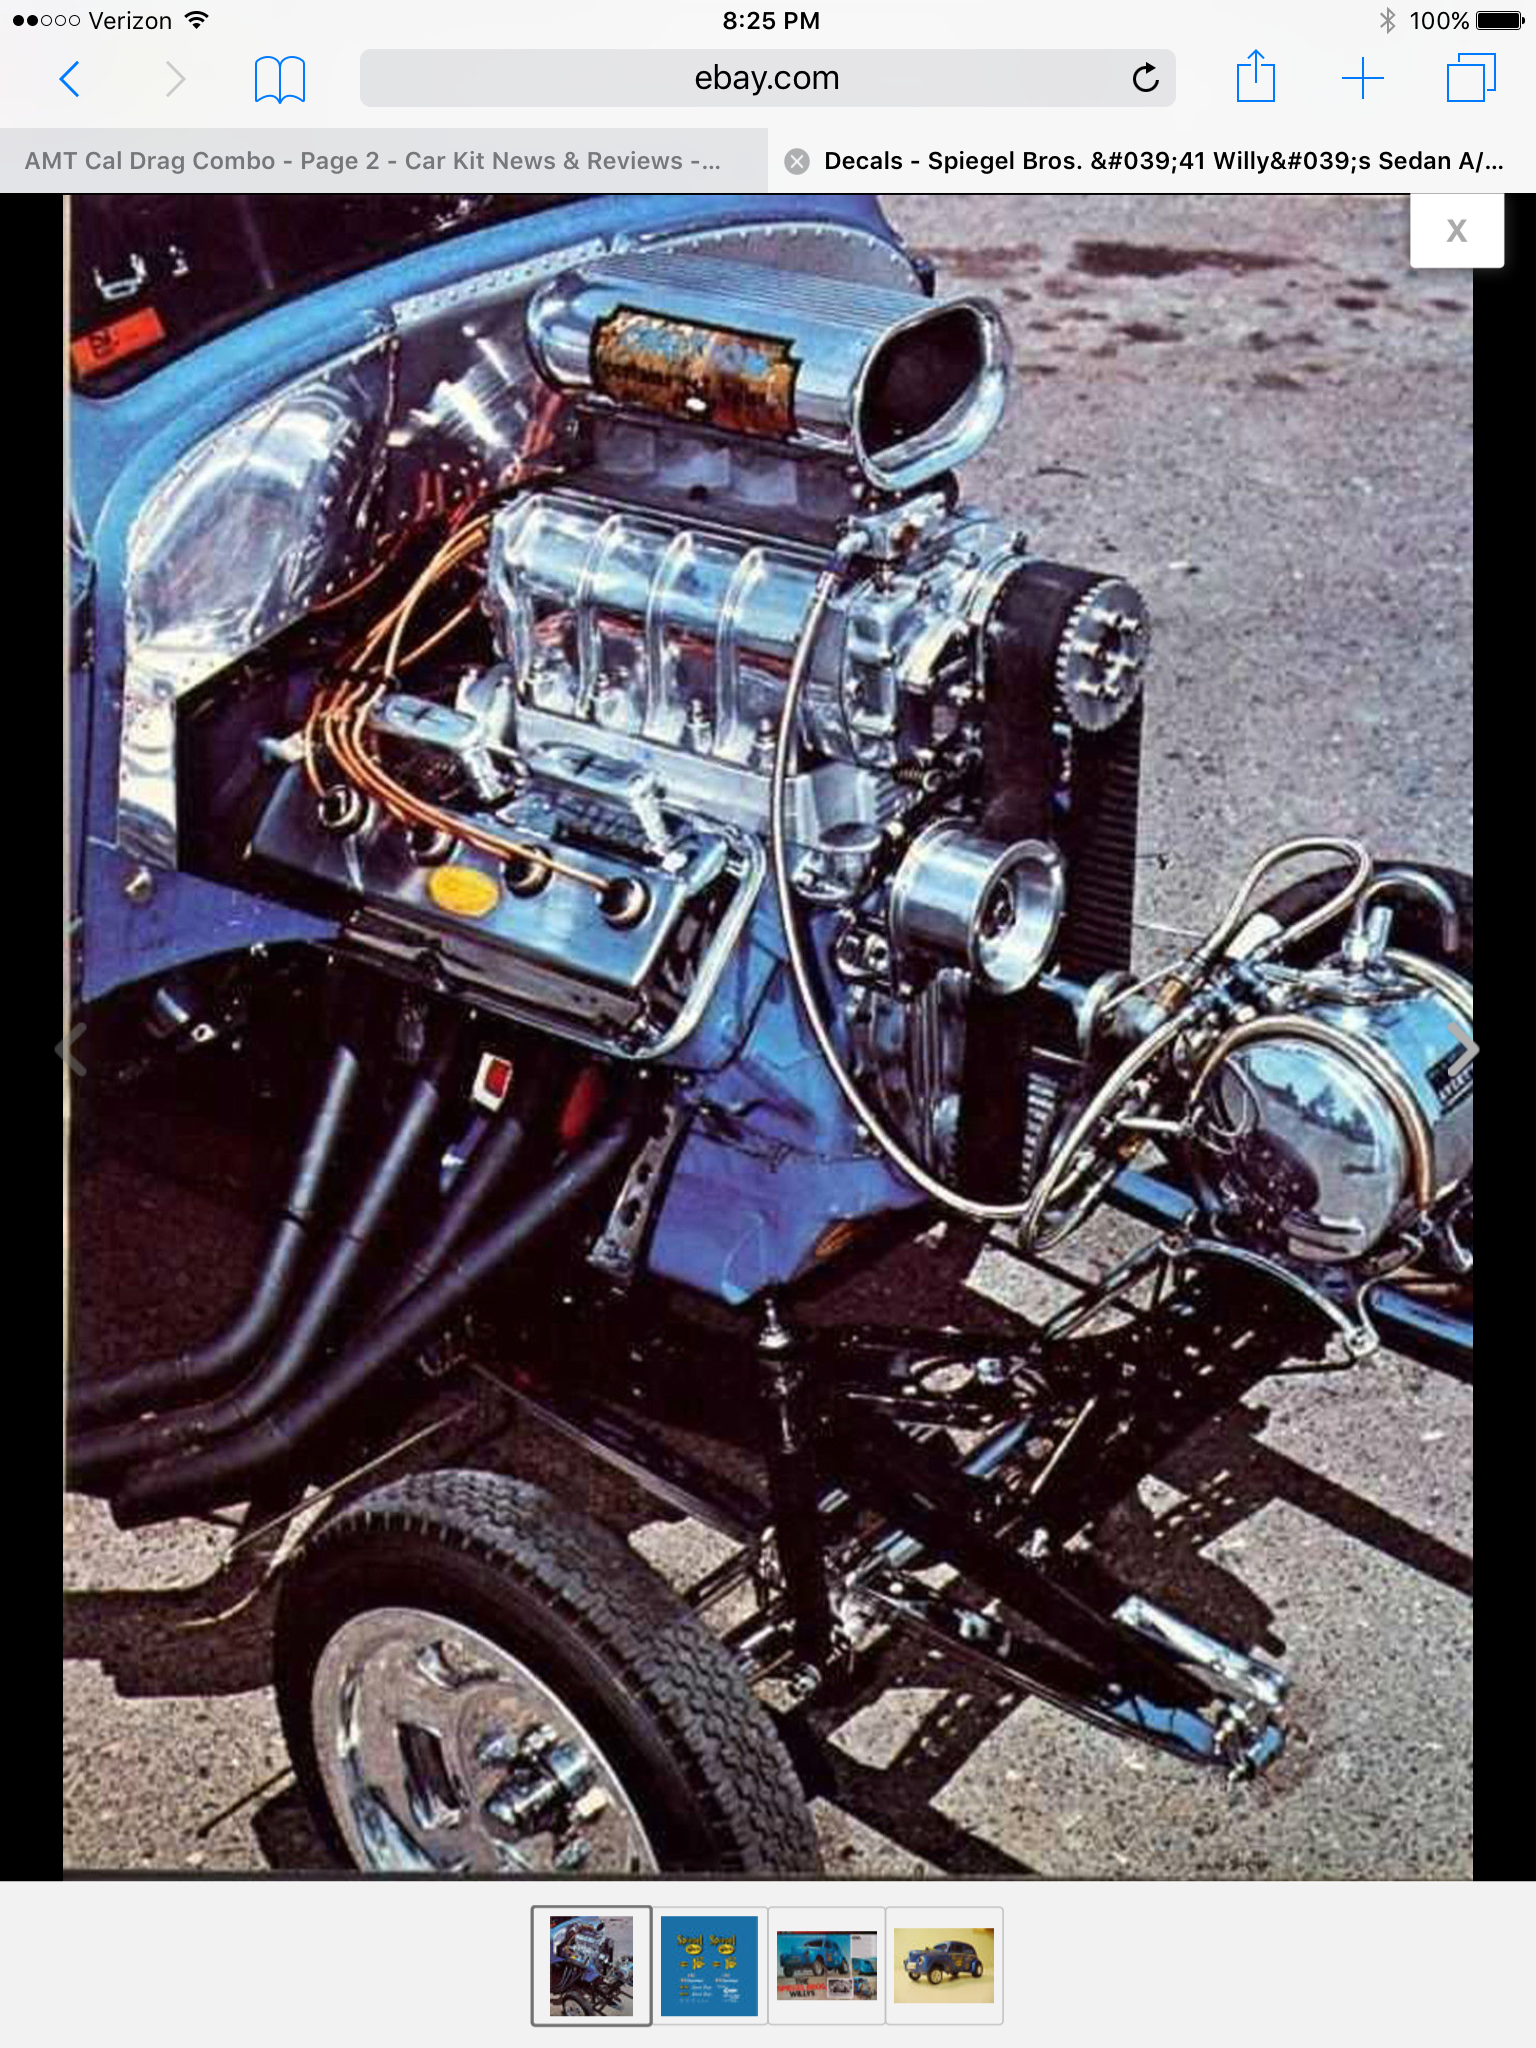 Pin by Dave Riddle on Motors | Pinterest | Vintage racing, Engine ...